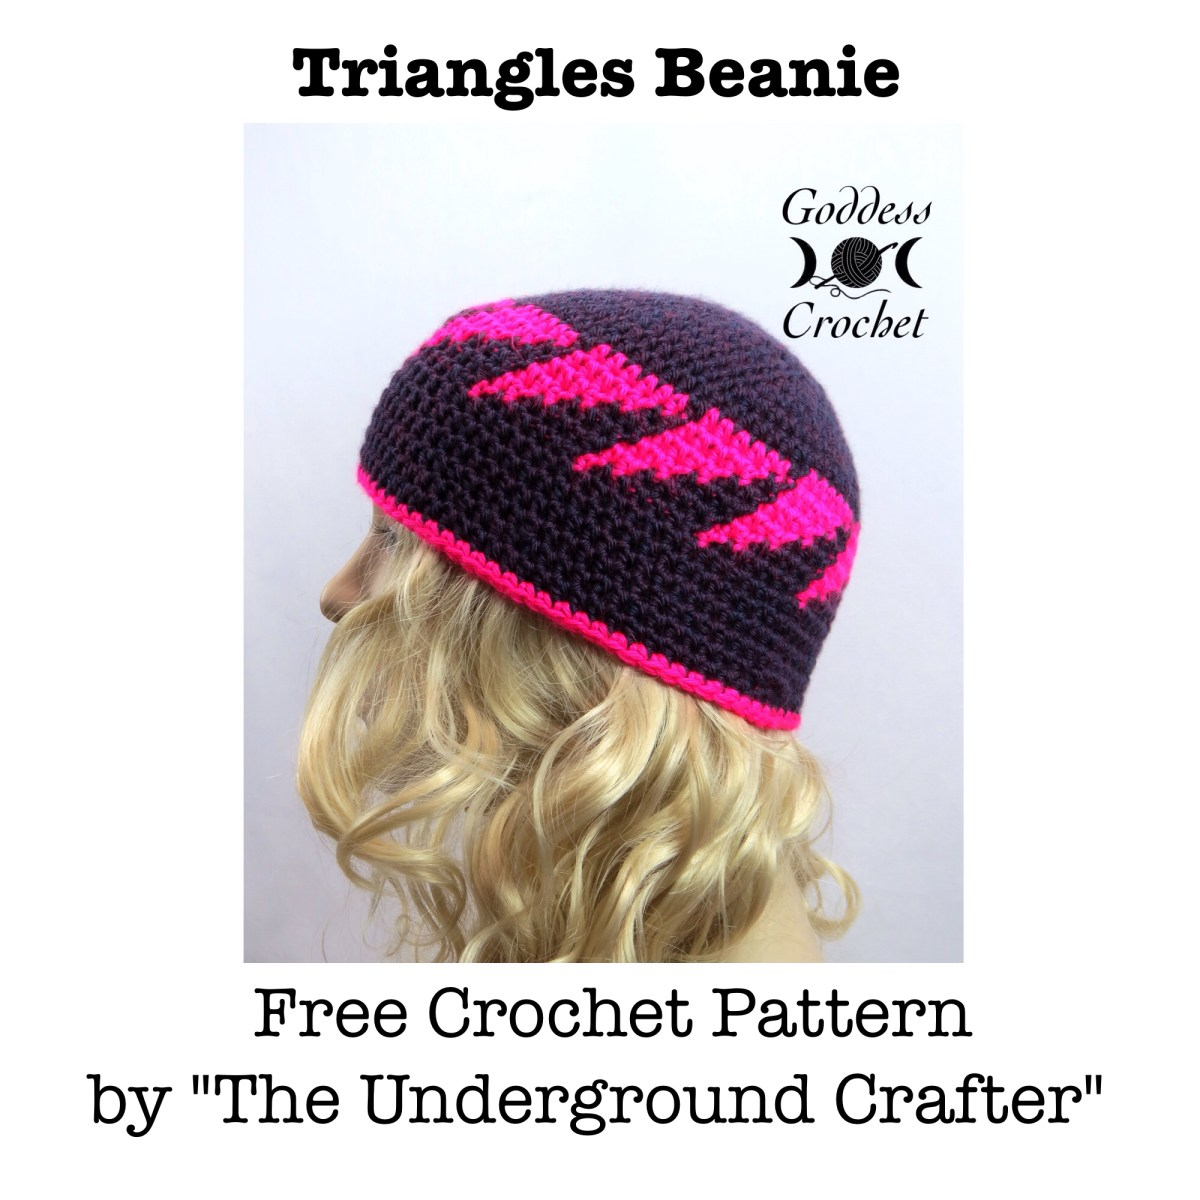 Free Crochet Pattern Link Hat : Triangles Beanie Hat ? Link to Free Crochet Pattern ...